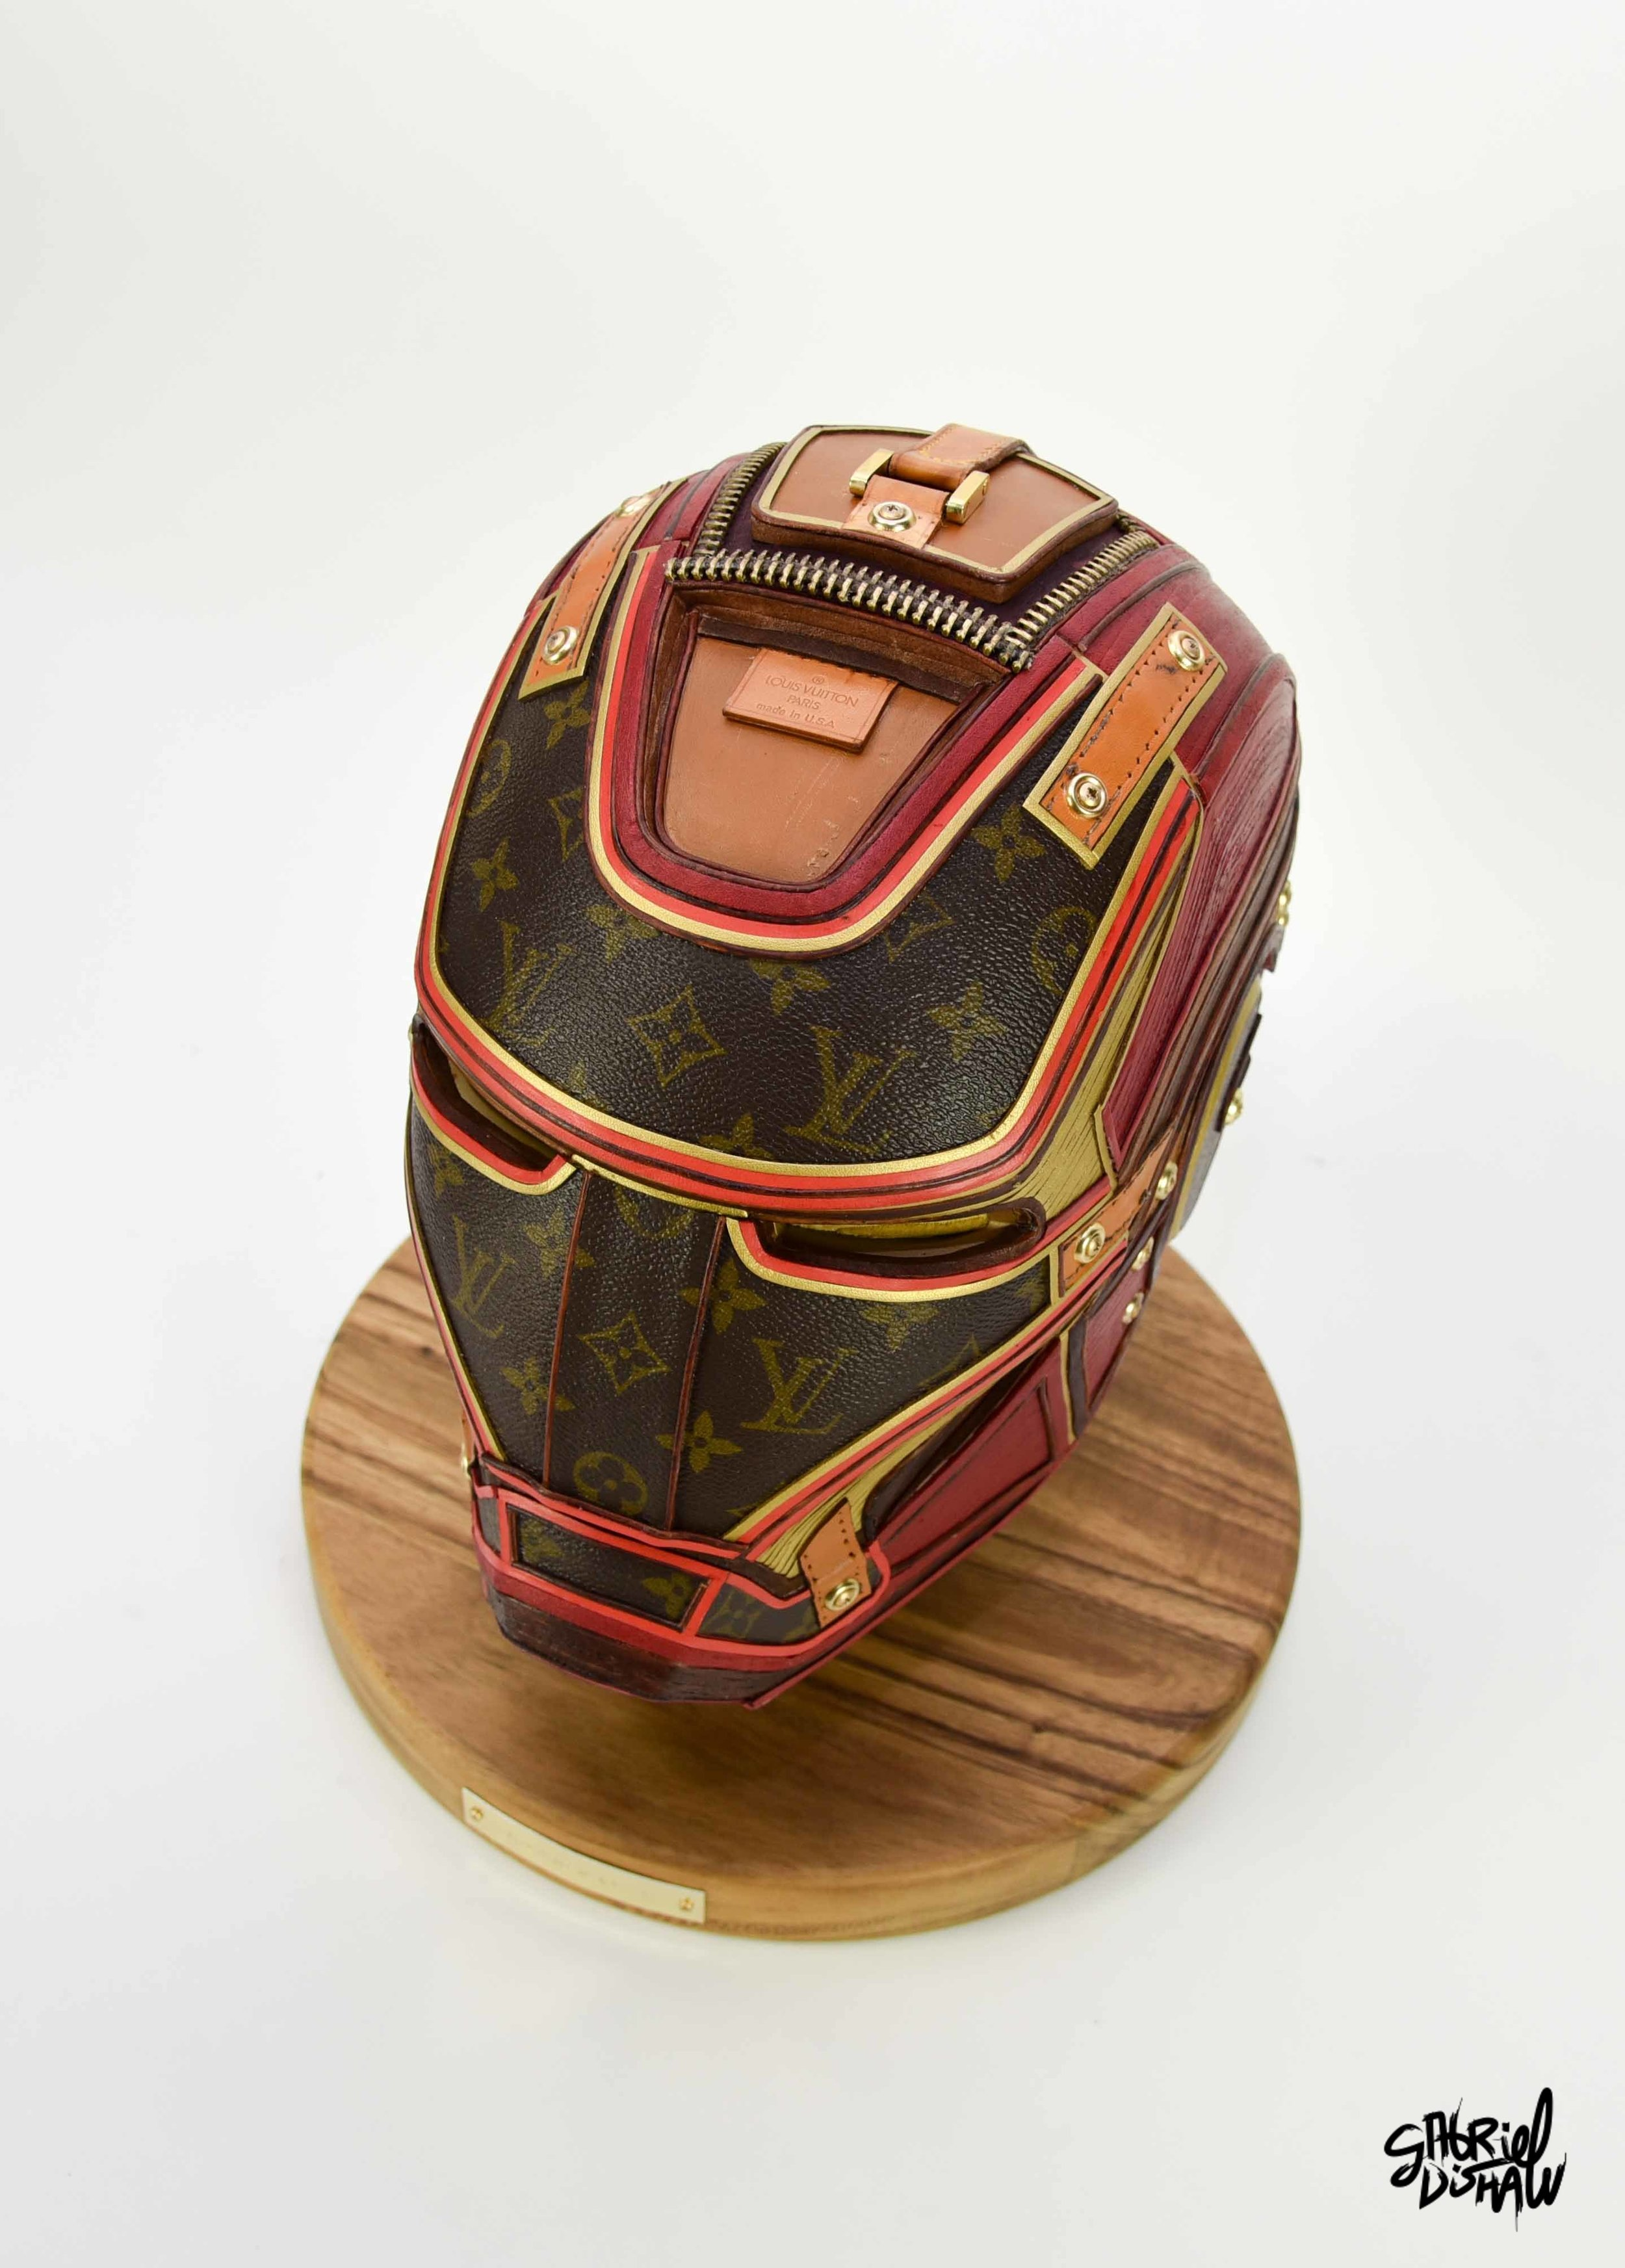 Gabriel Dishaw Iron Man LV Three-5290.jpg